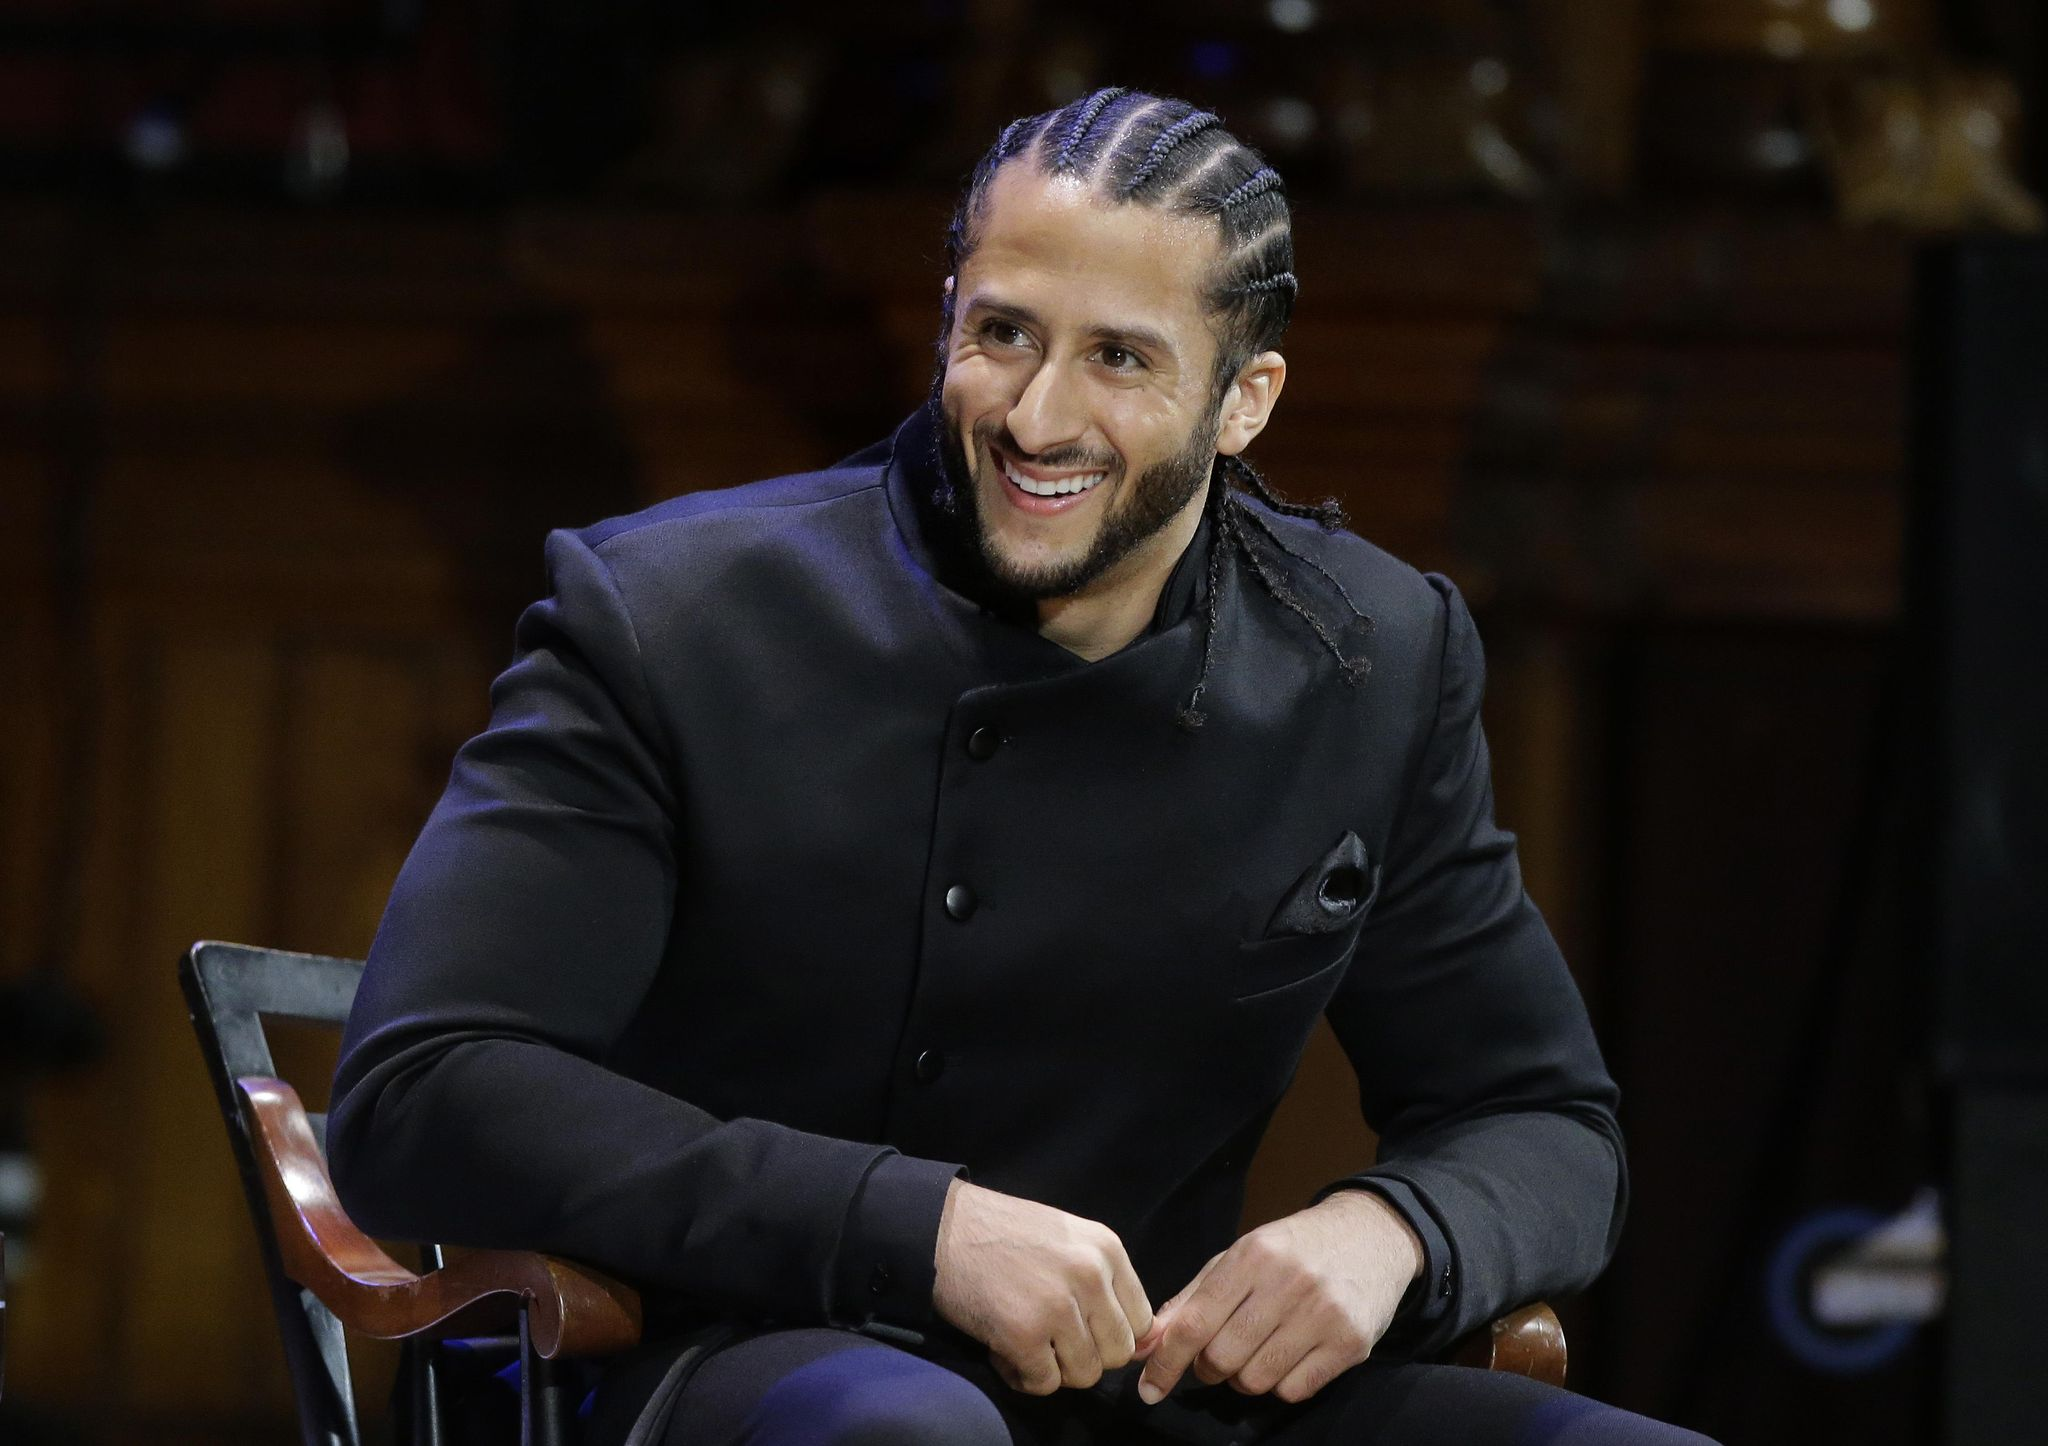 Colin Kaepernick's future up in air after NFL settlement